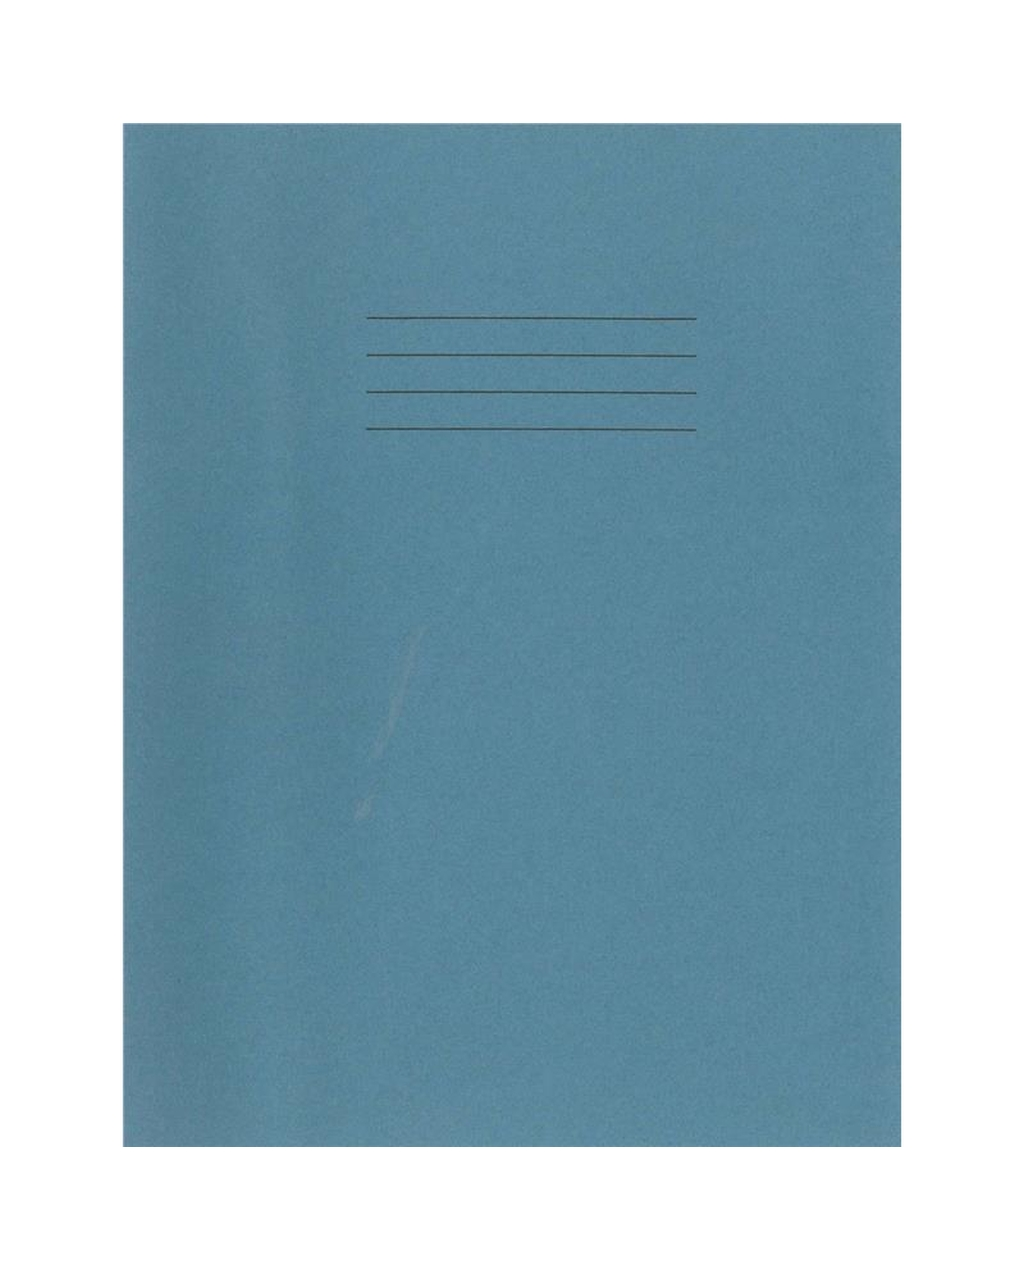 Exercise Book A4+ (330 x 250mm) Light Blue Cover Plain - No Ruling 80 Pages